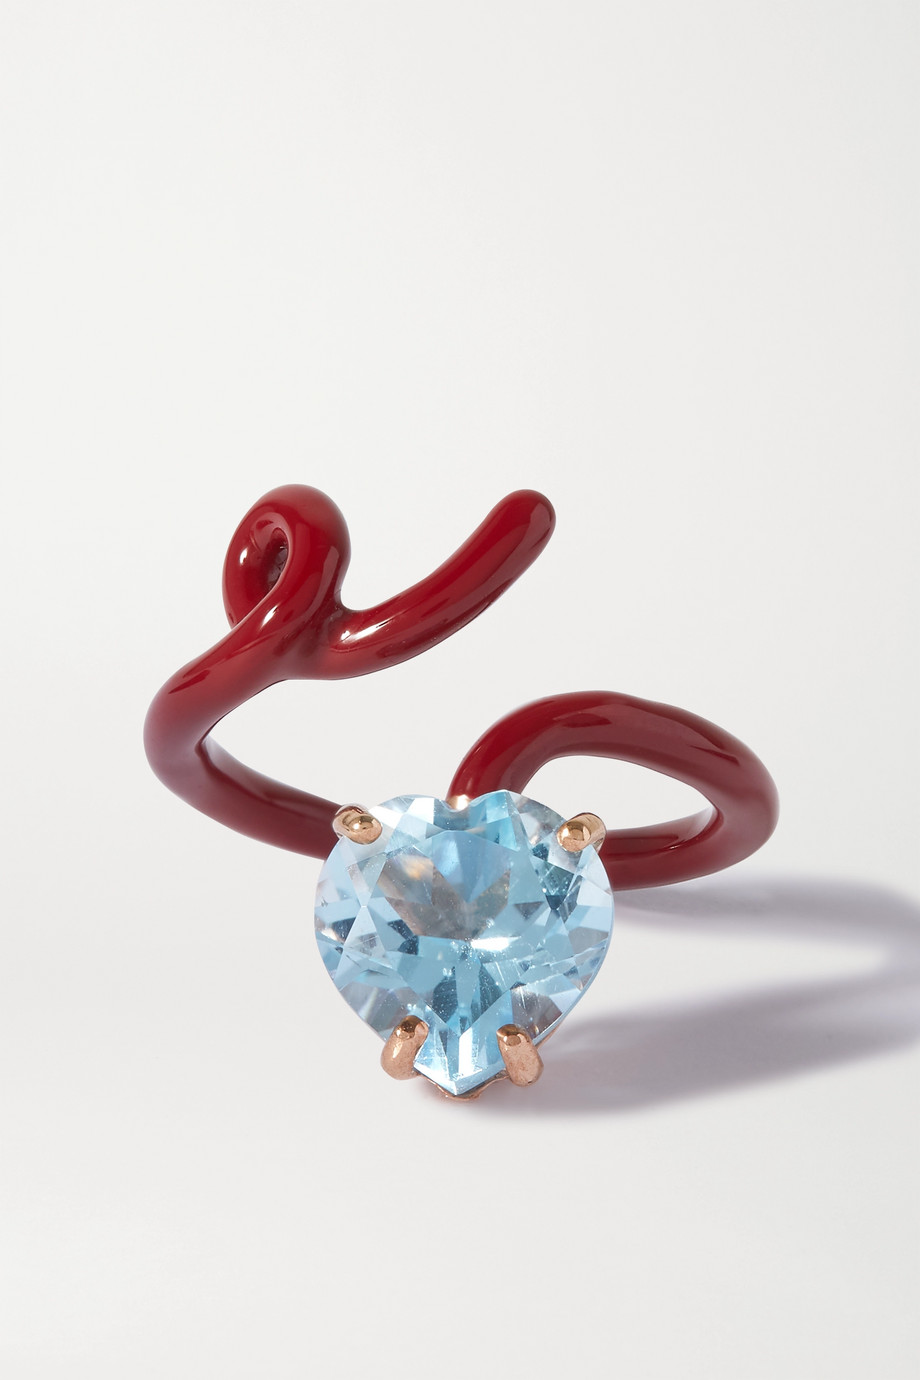 Bea Bongiasca Baby Vine Tendril 9-karat rose gold, enamel and topaz ring